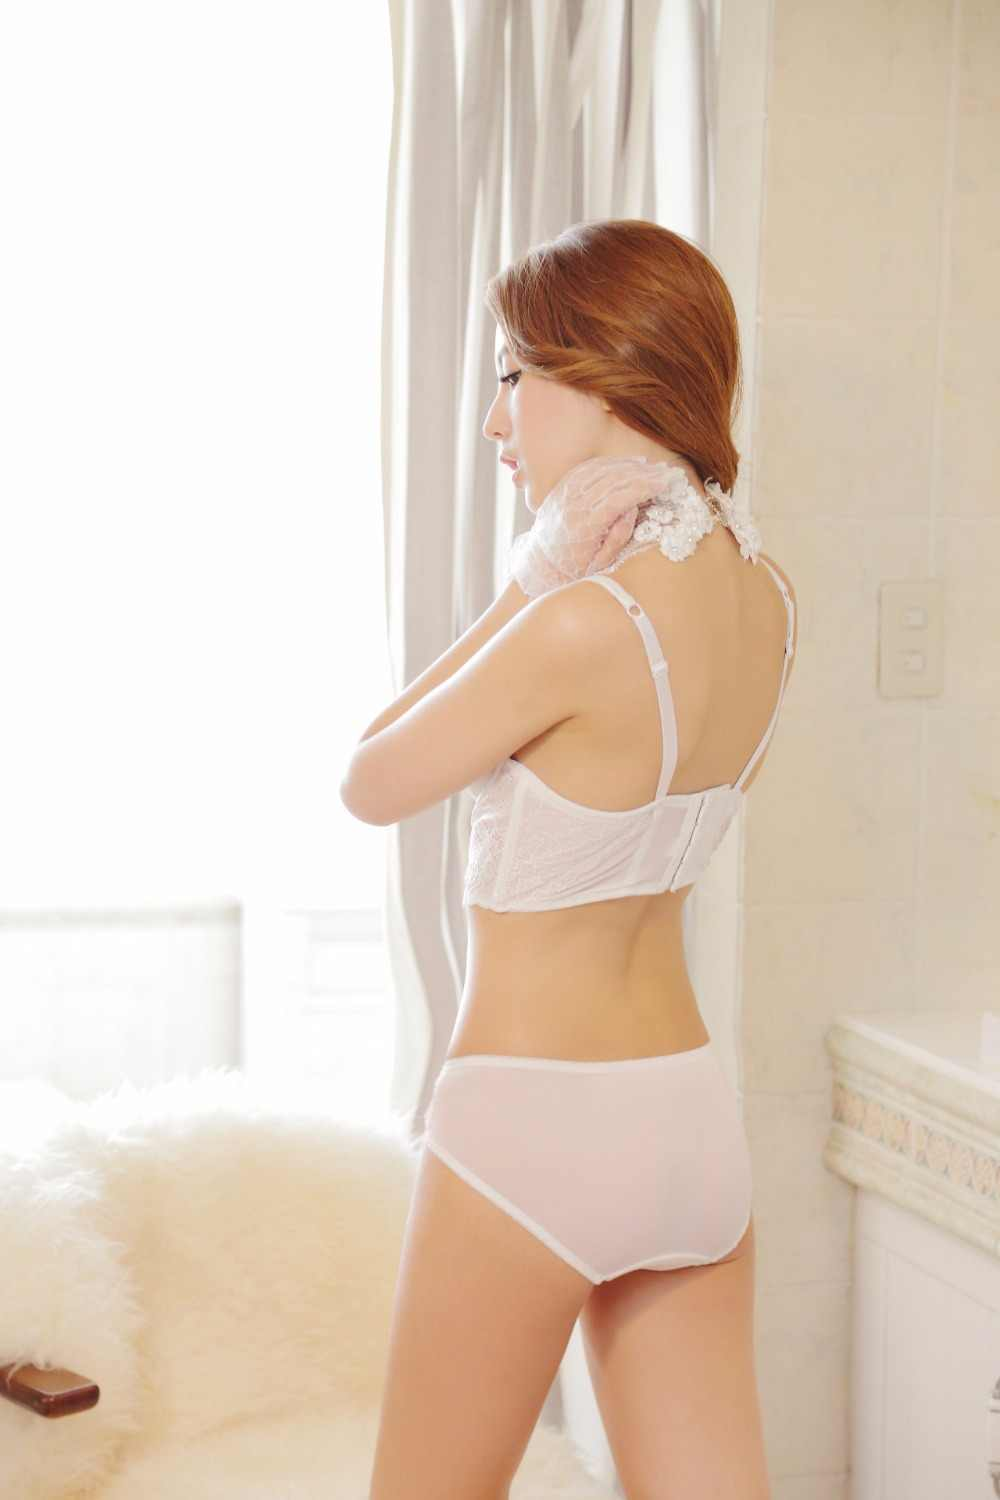 New arrival bra set high quality floral women underwear set sexy push up adjusted girls lingerie set solid color free size pants